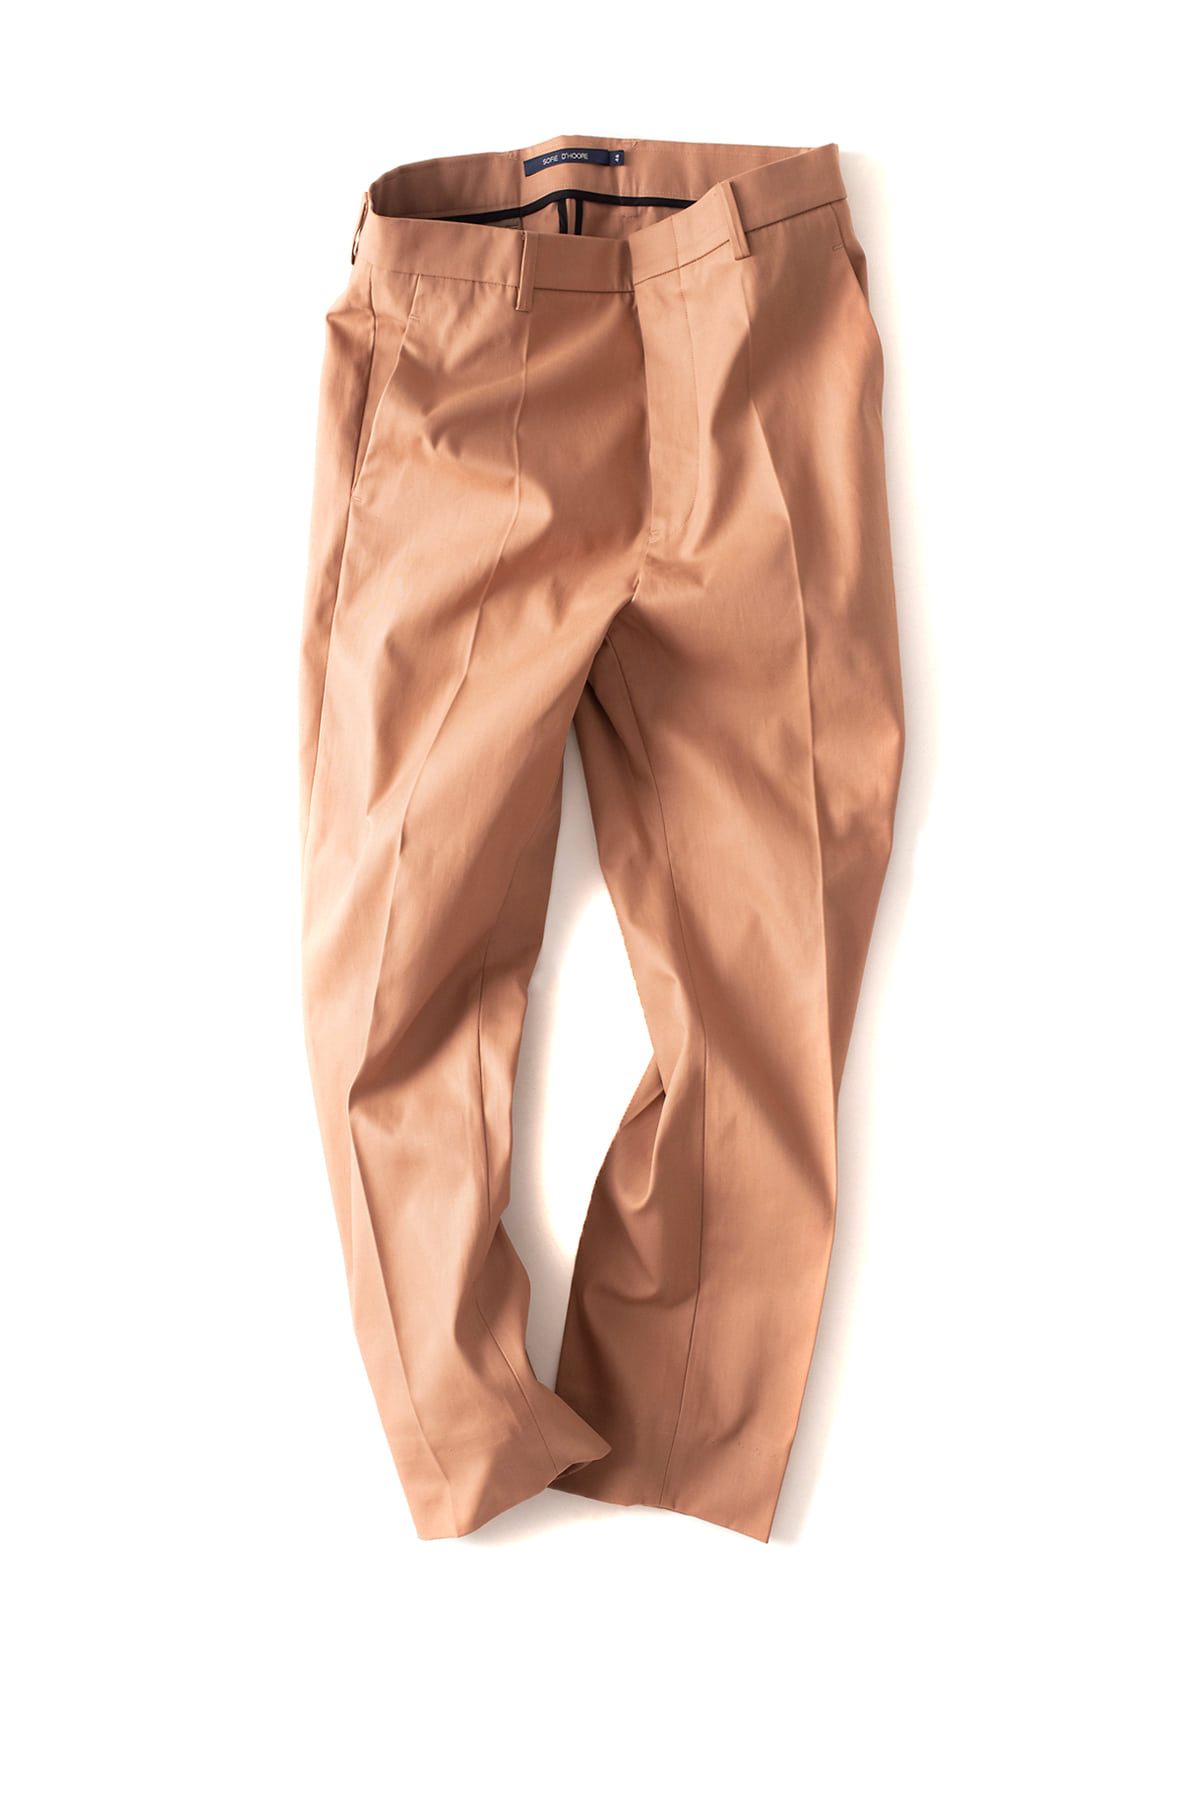 Sofie D'Hoore : Classic Fitted Pants (Peach)